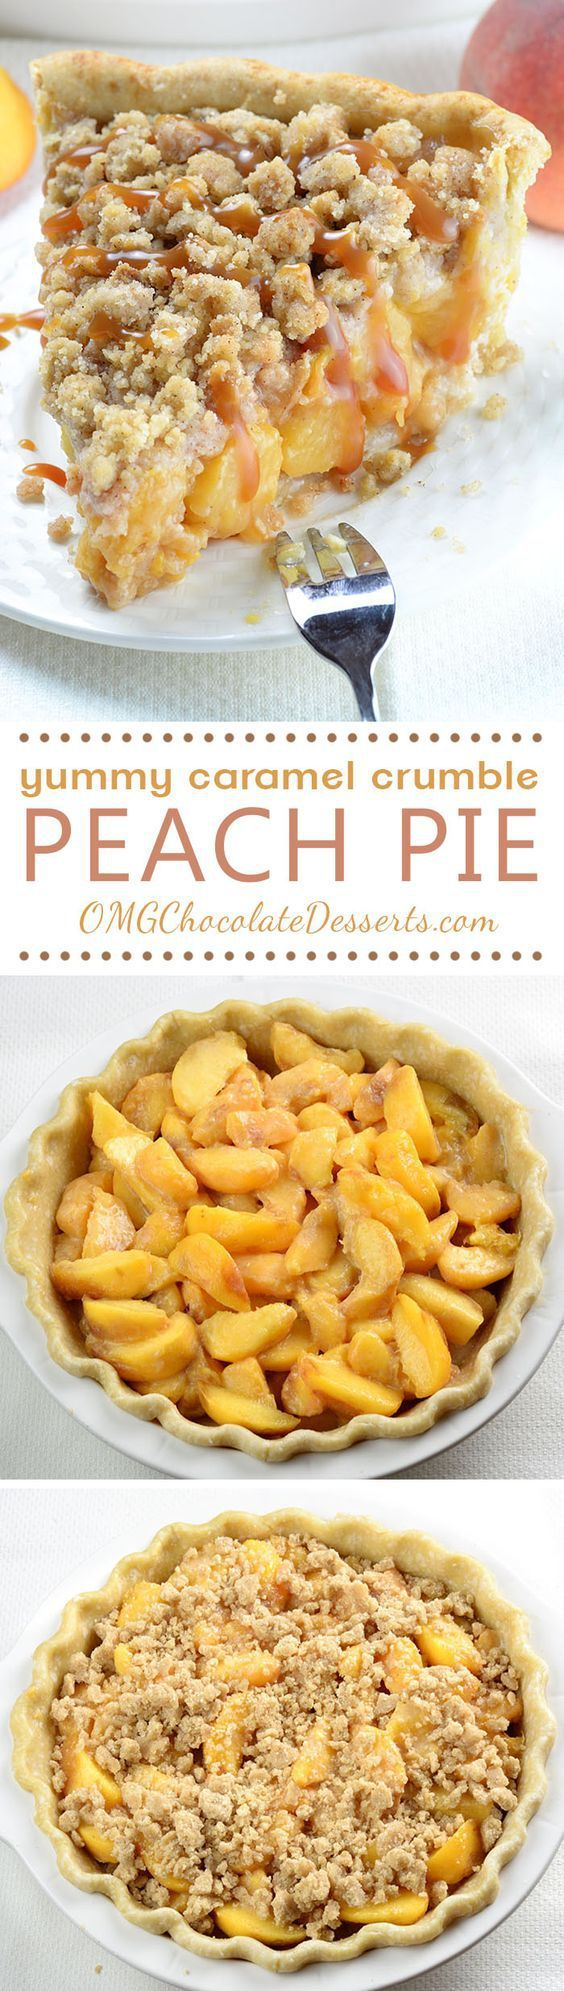 Caramel Crumble Peach Pie Dessert Recipe via OMG Chocolate Desserts - homemade buttery crust packed with sweet juicy peaches and salted caramel sauce, topped with brown sugar cinnamon crumbs. Super easy, crowd-pleaser summer dessert! - Favorite EASY Pies Recipes - Brunch Dessert No-Bake + Bake Musts